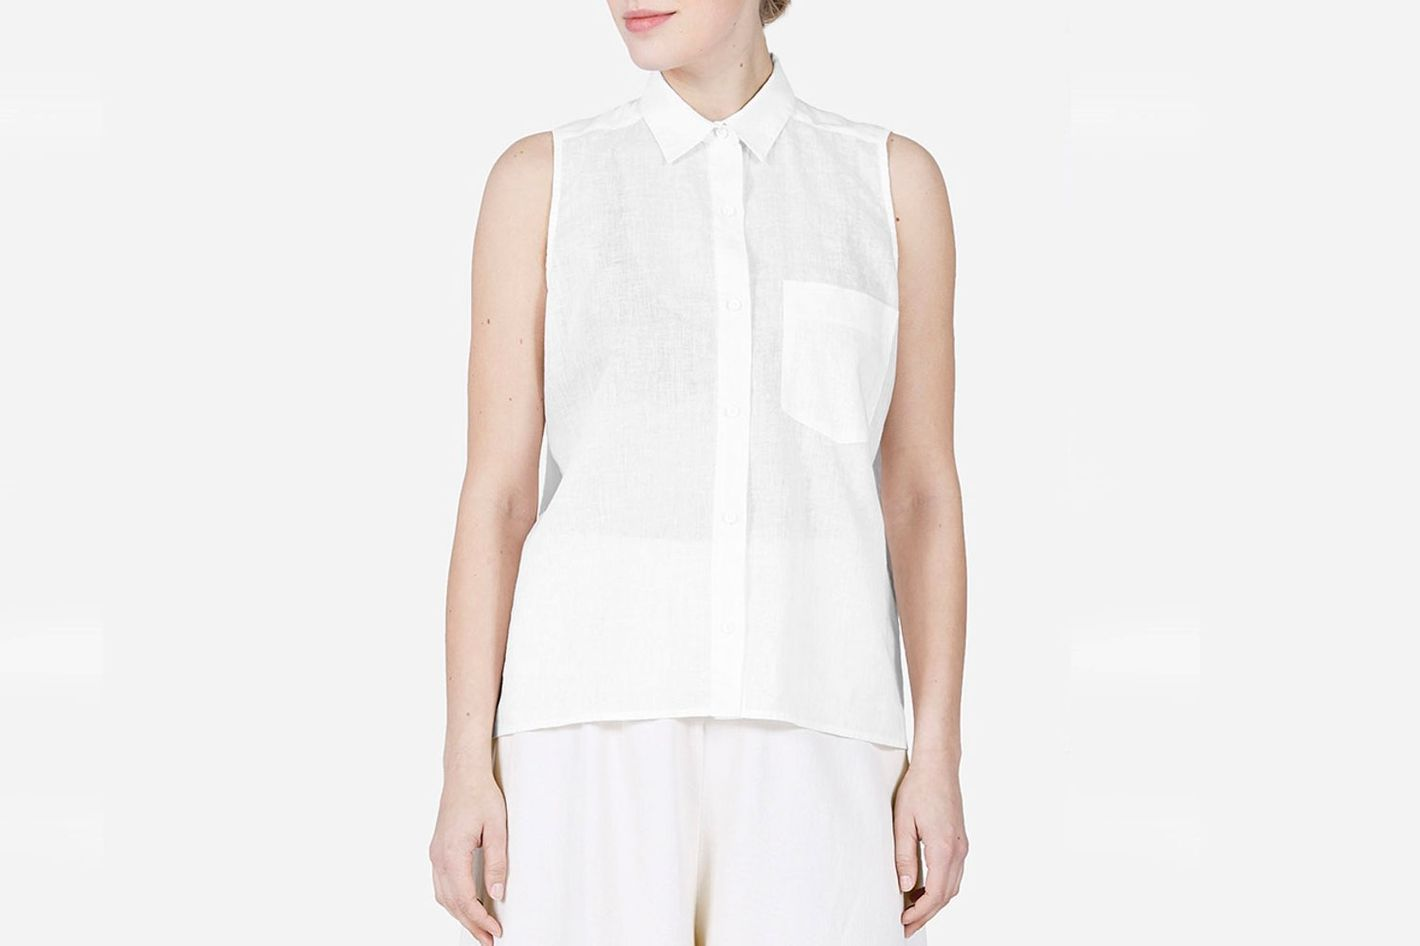 Everlane Cotton-Linen Sleeveless Shirt